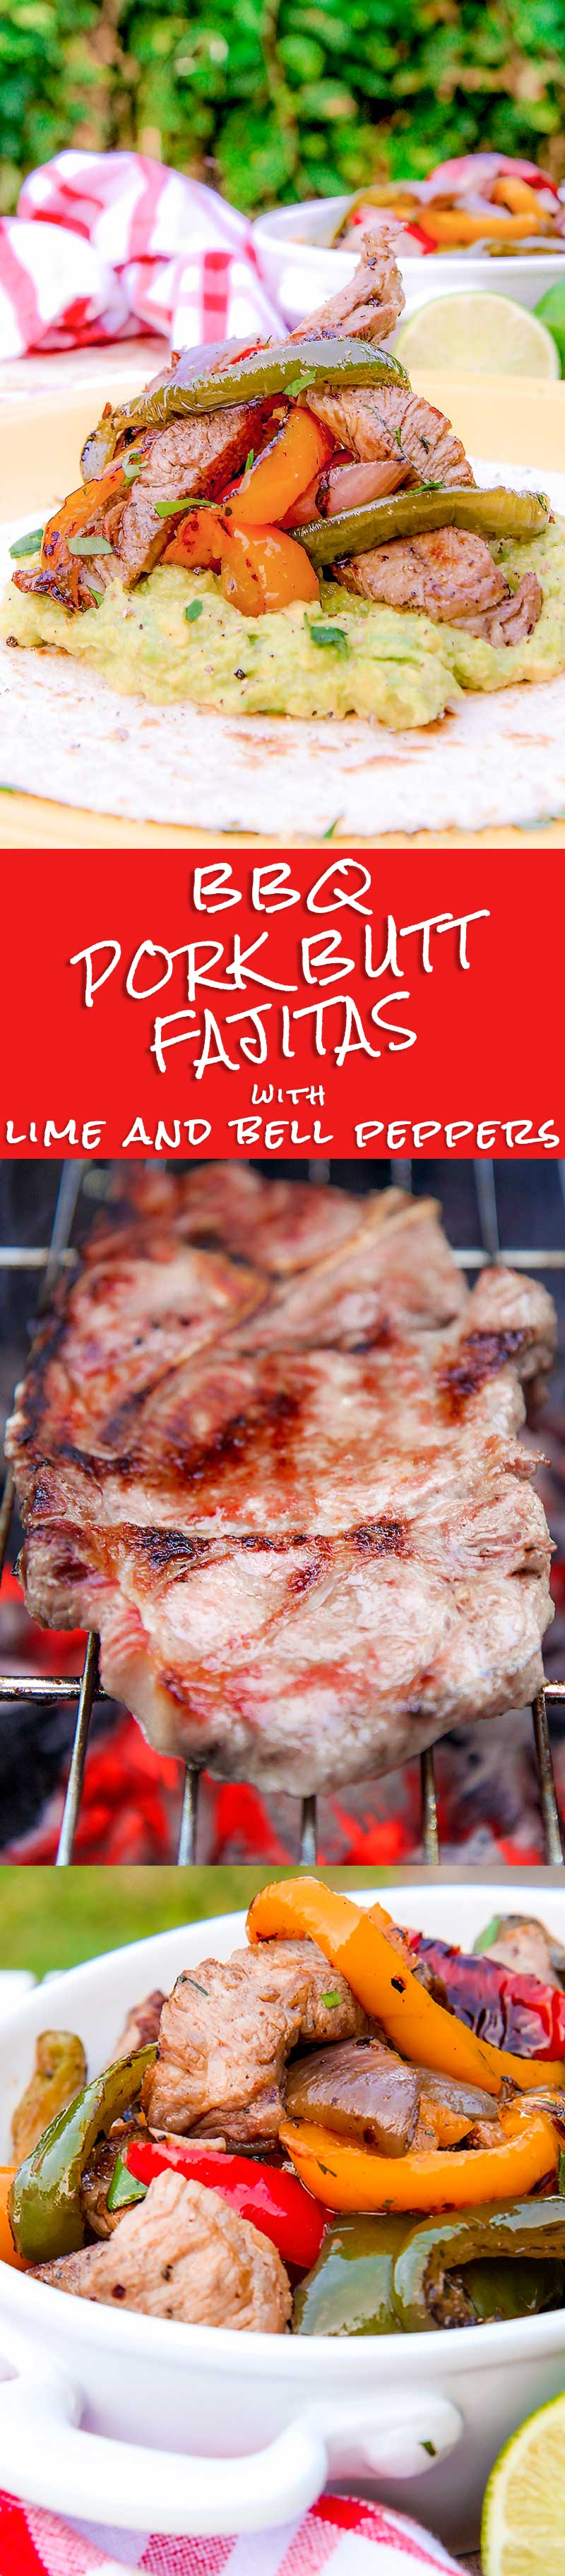 BBQ PORK FAJITAS marinated with beer and lime juice